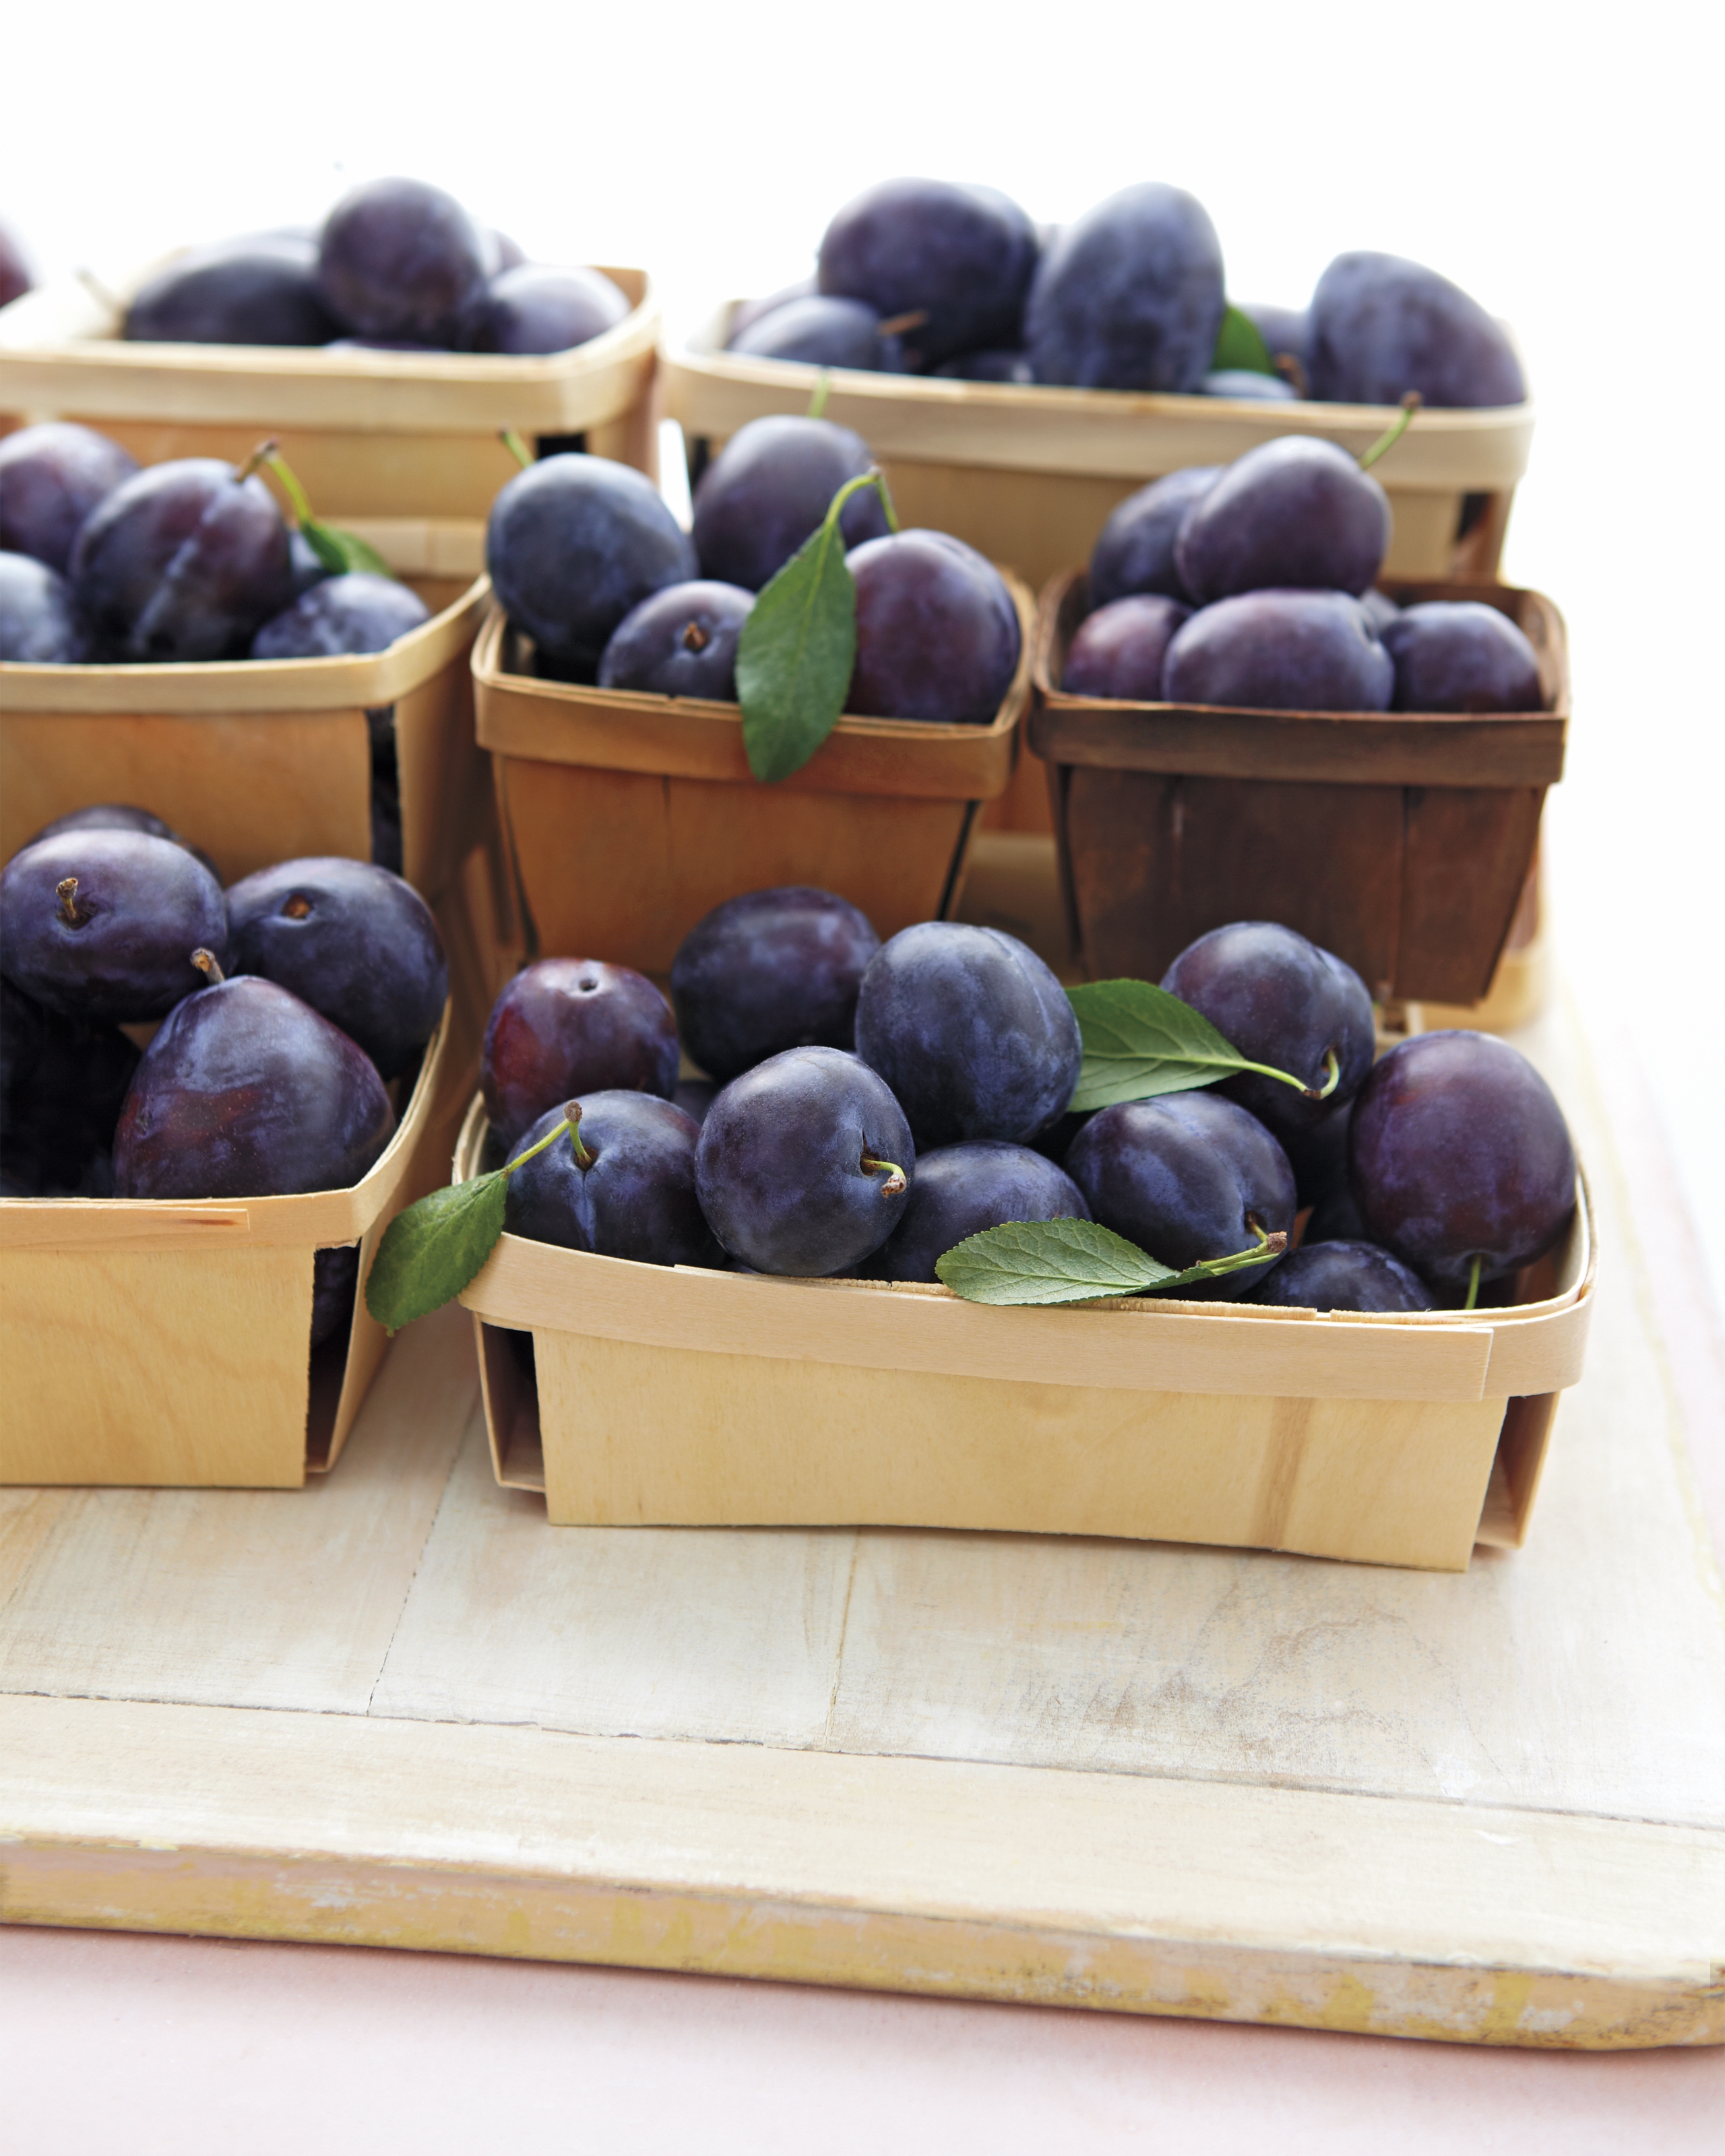 Farm-Stand Find: Italian Prune Plums